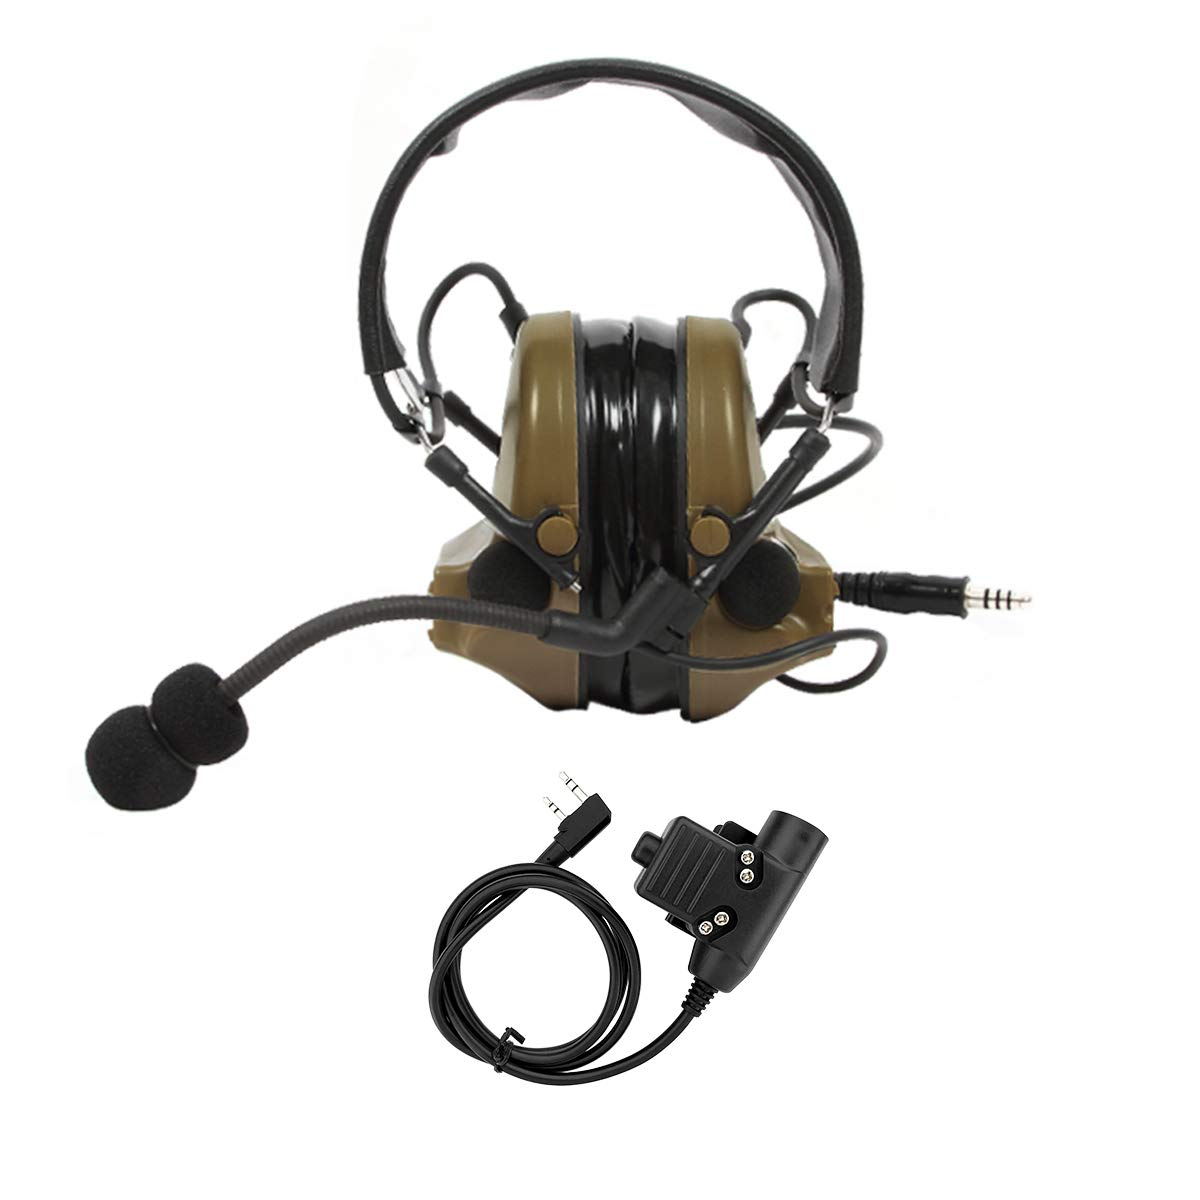 TAC-SKY Electronic Tactical Headset Hearing Defender Noise Reduction Sound Pickup Ear Protection (Coyote Brown)